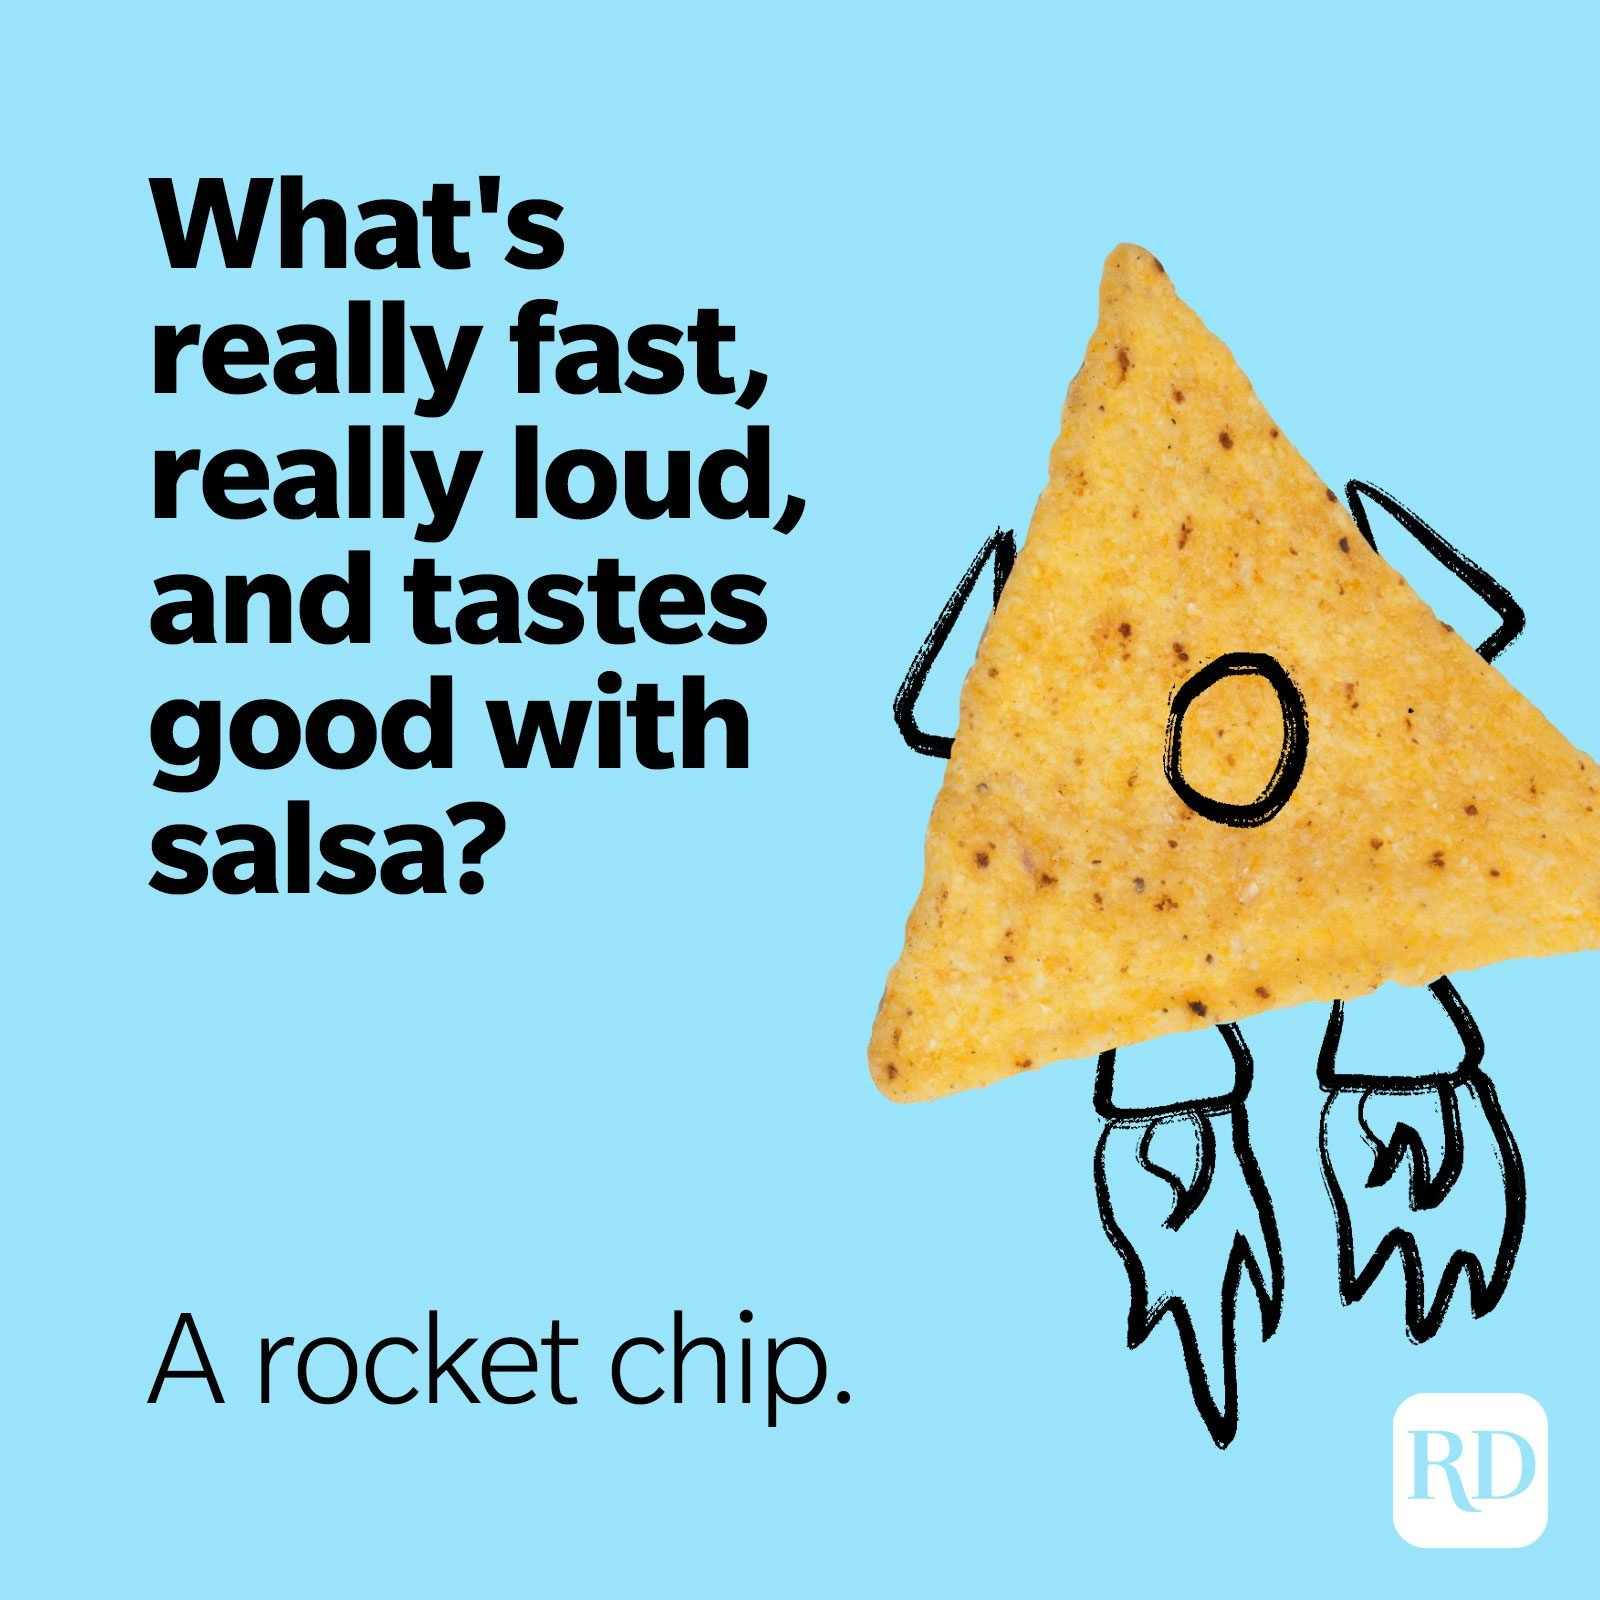 11. What's really fast, really loud, and tastes good with salsa? A rocket chip.